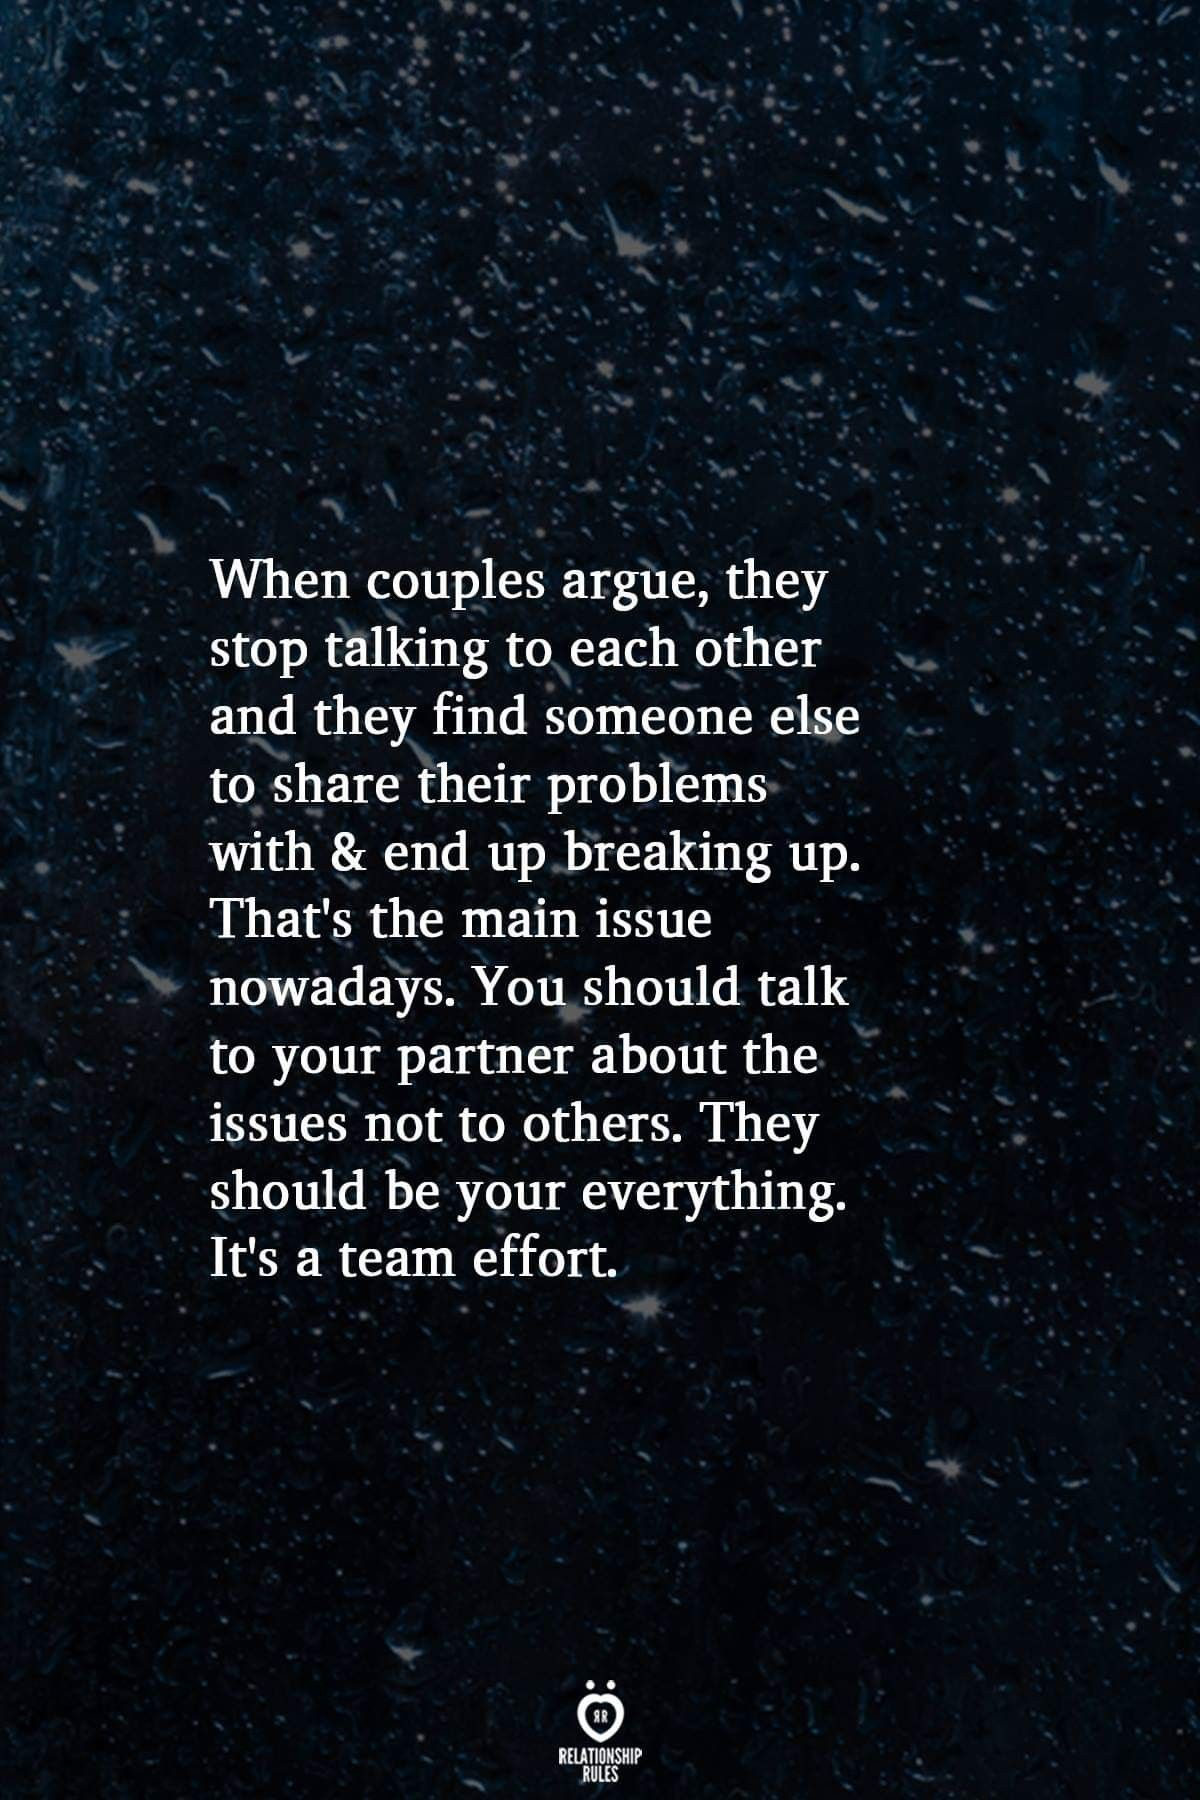 Pin by Tammy Gigot on quotes   Relationship quotes